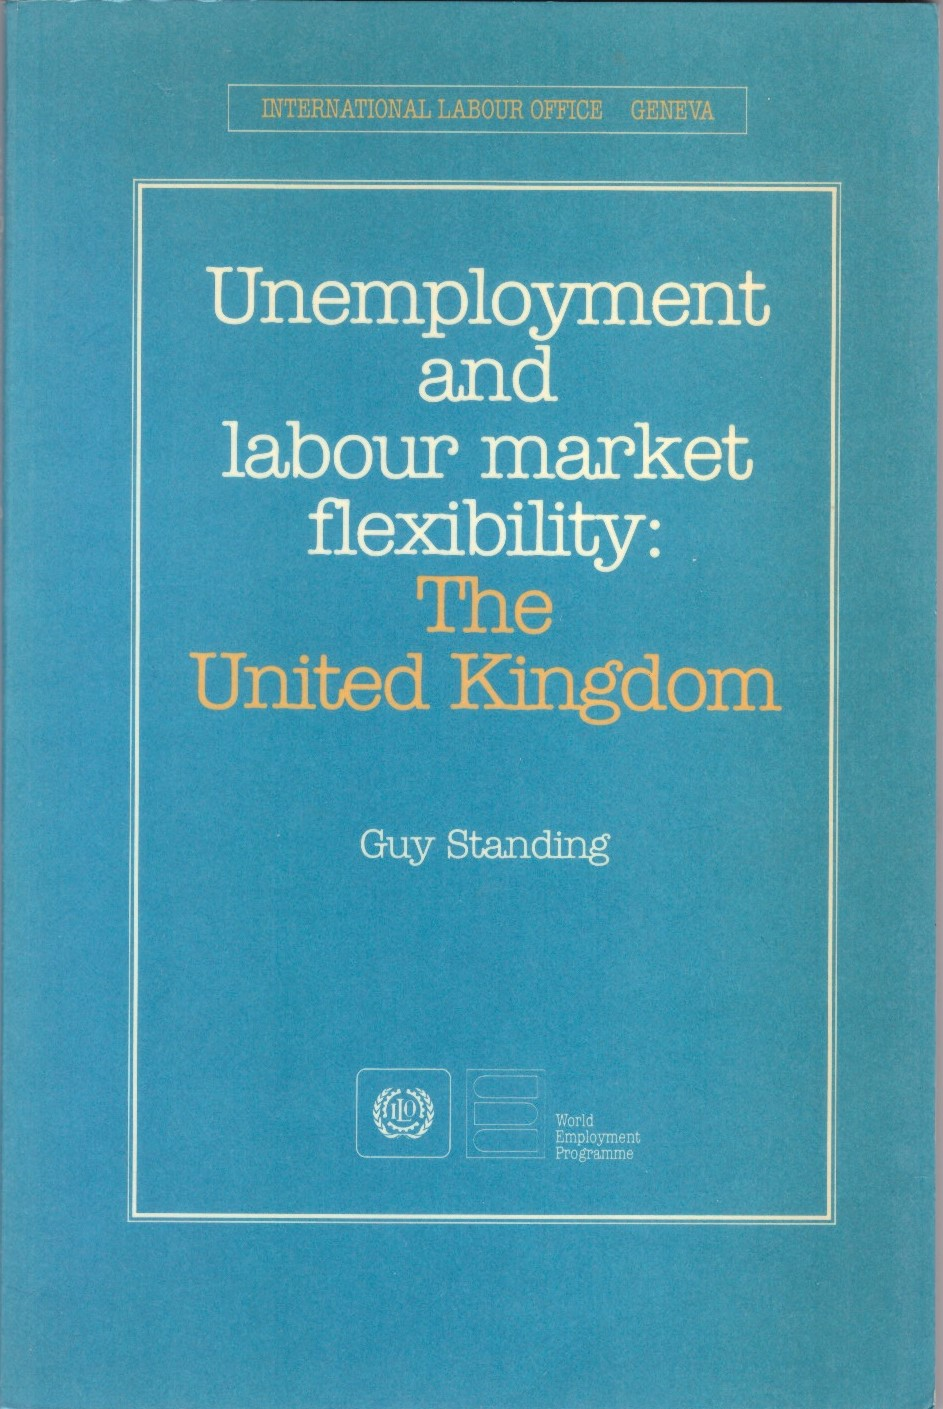 Unemployment & labour market flexibility - UK